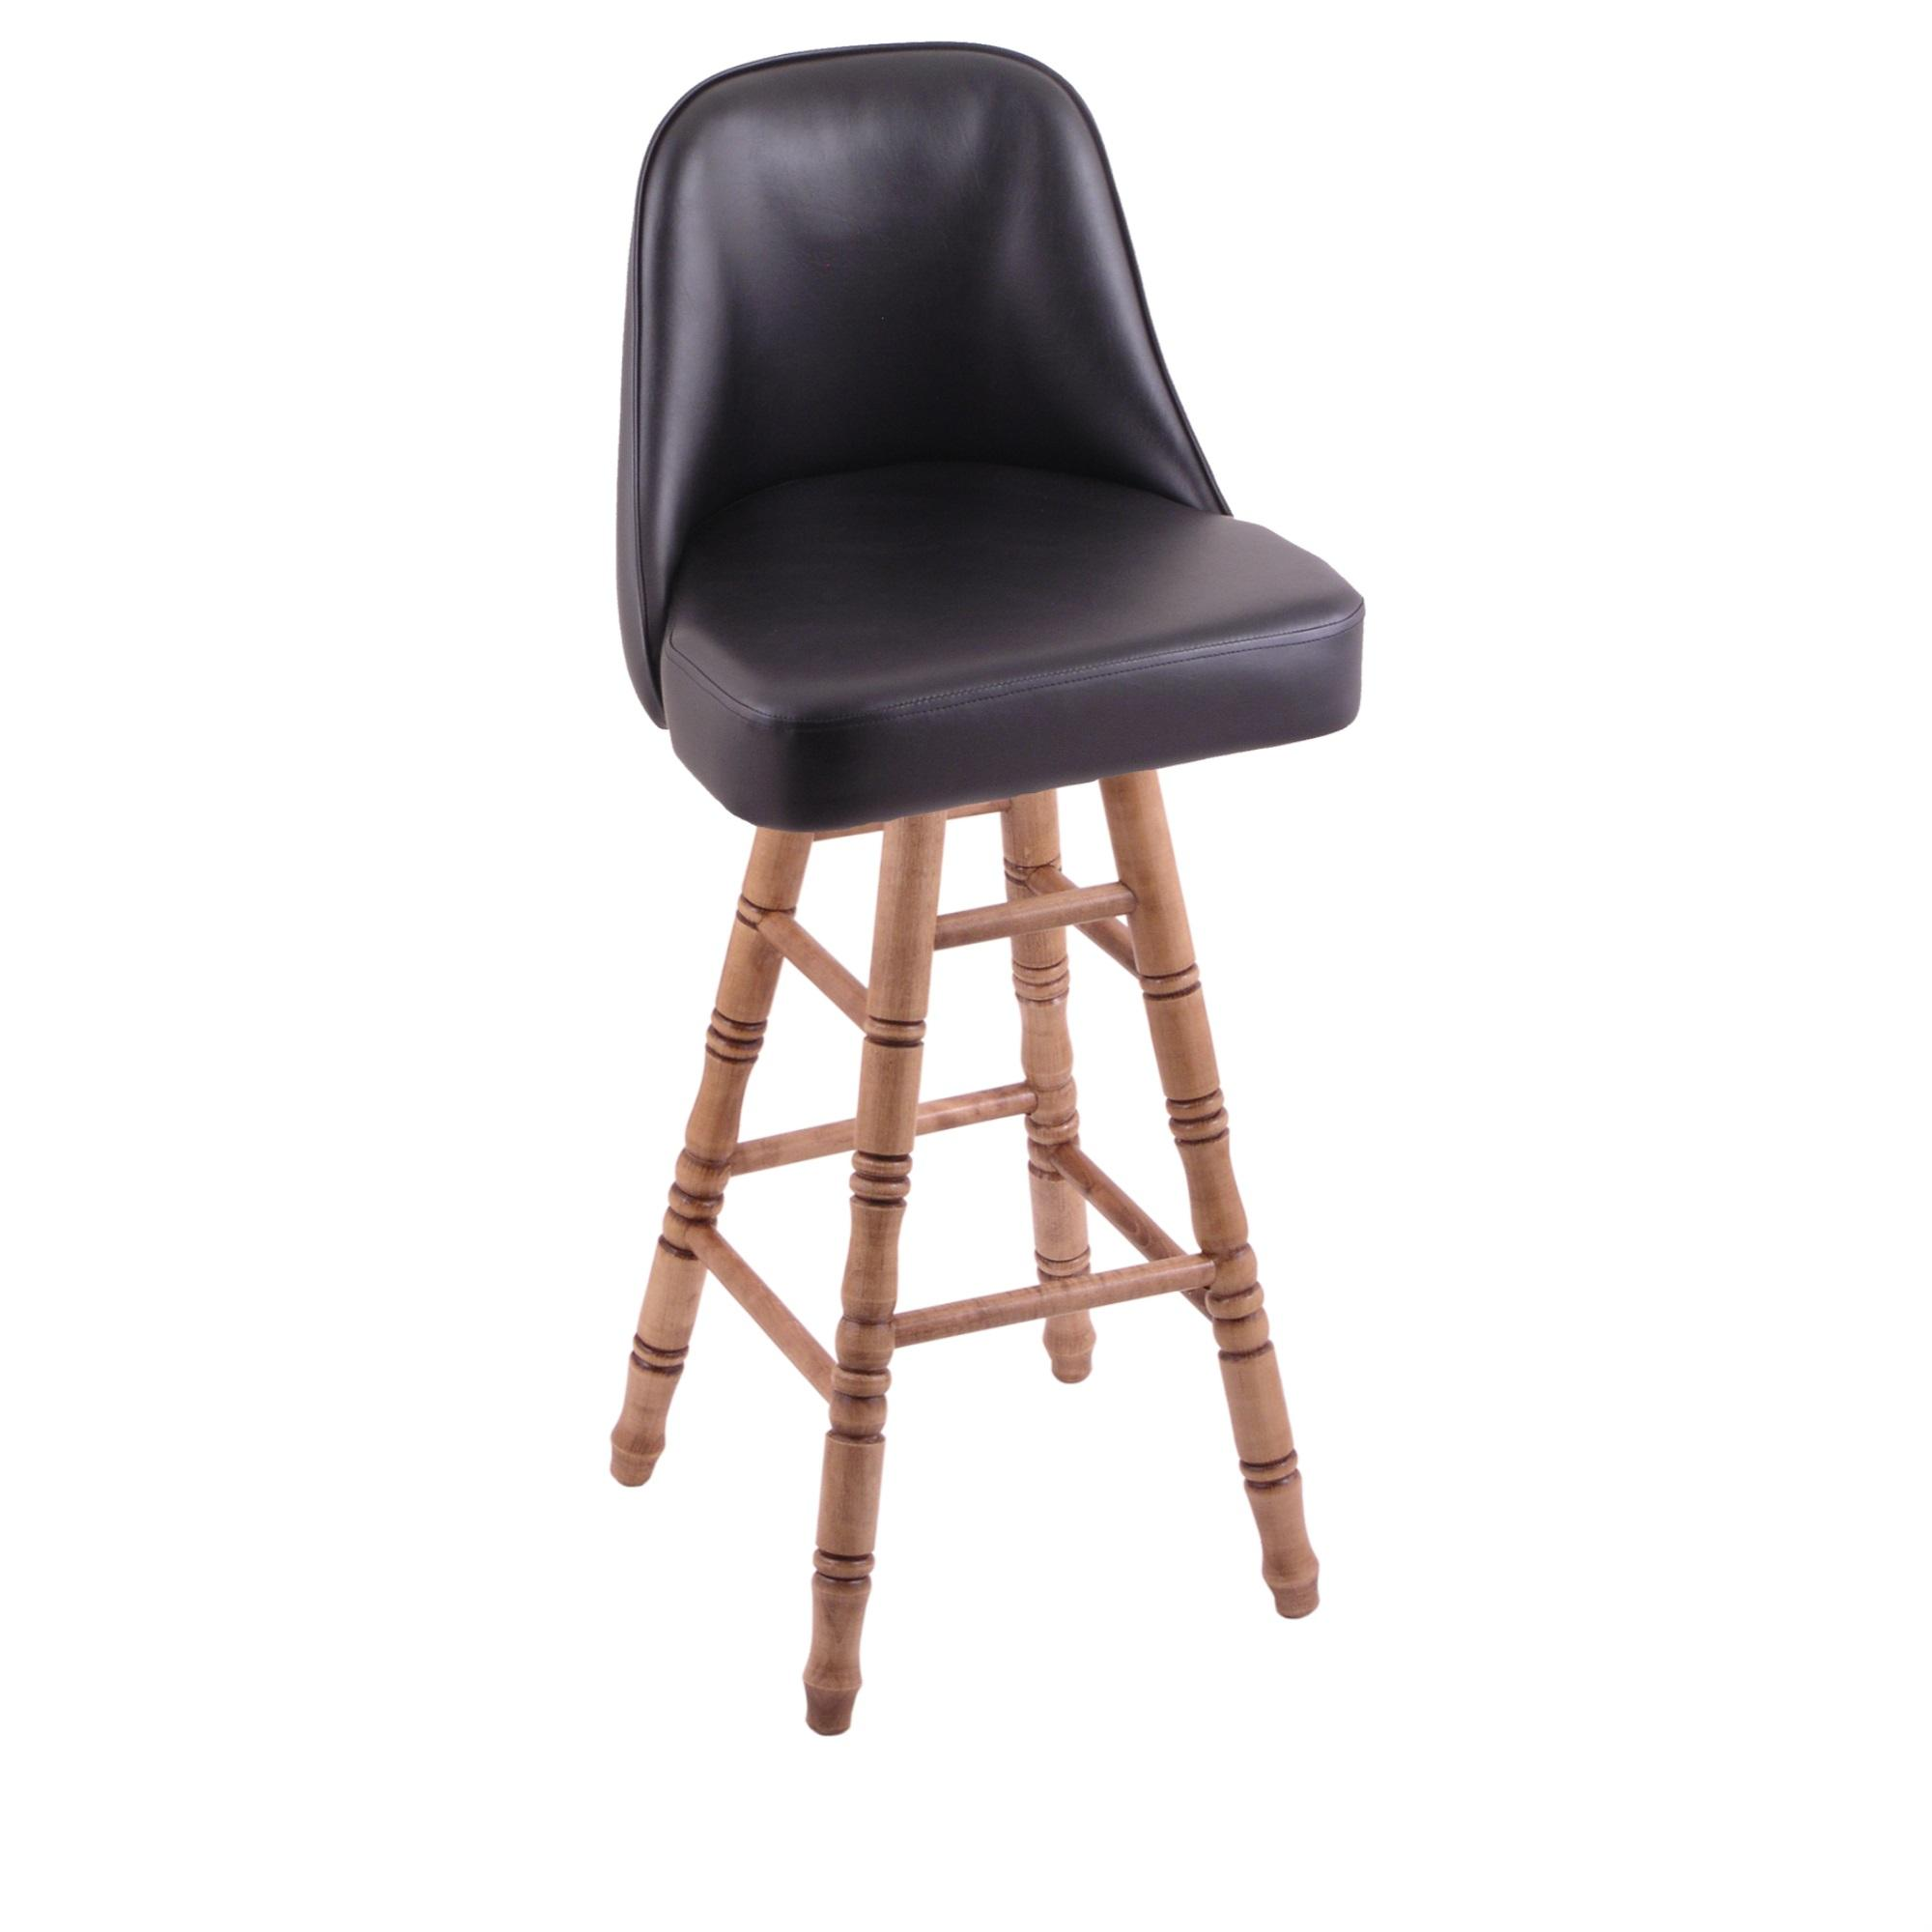 Grizzly Counter Stool with Turned Maple Legs, Medium Finish, and 360 Swivel